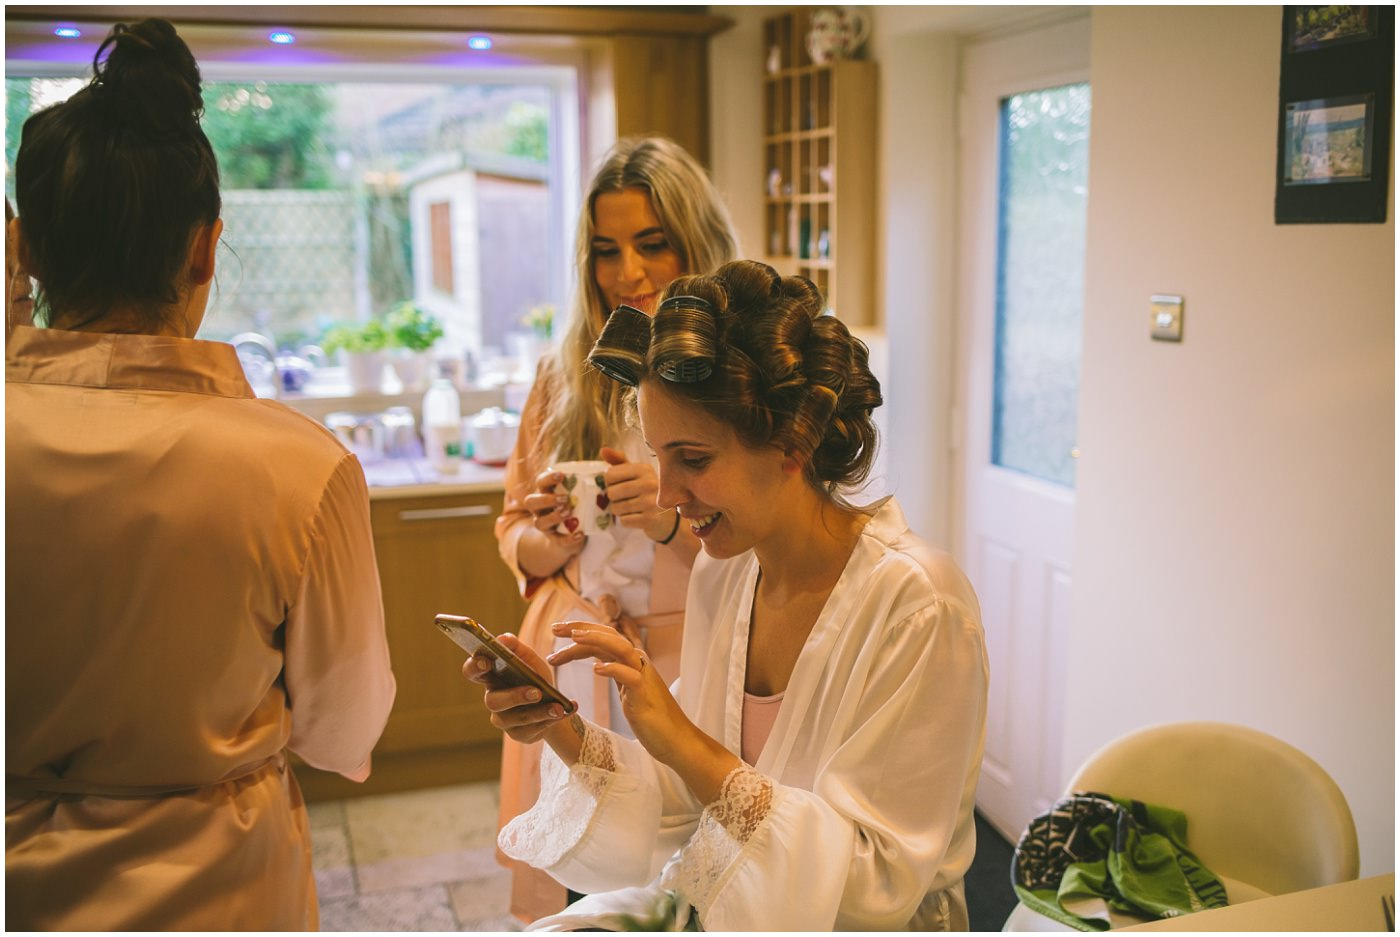 Bride to be becca checks her phone whilst getting ready